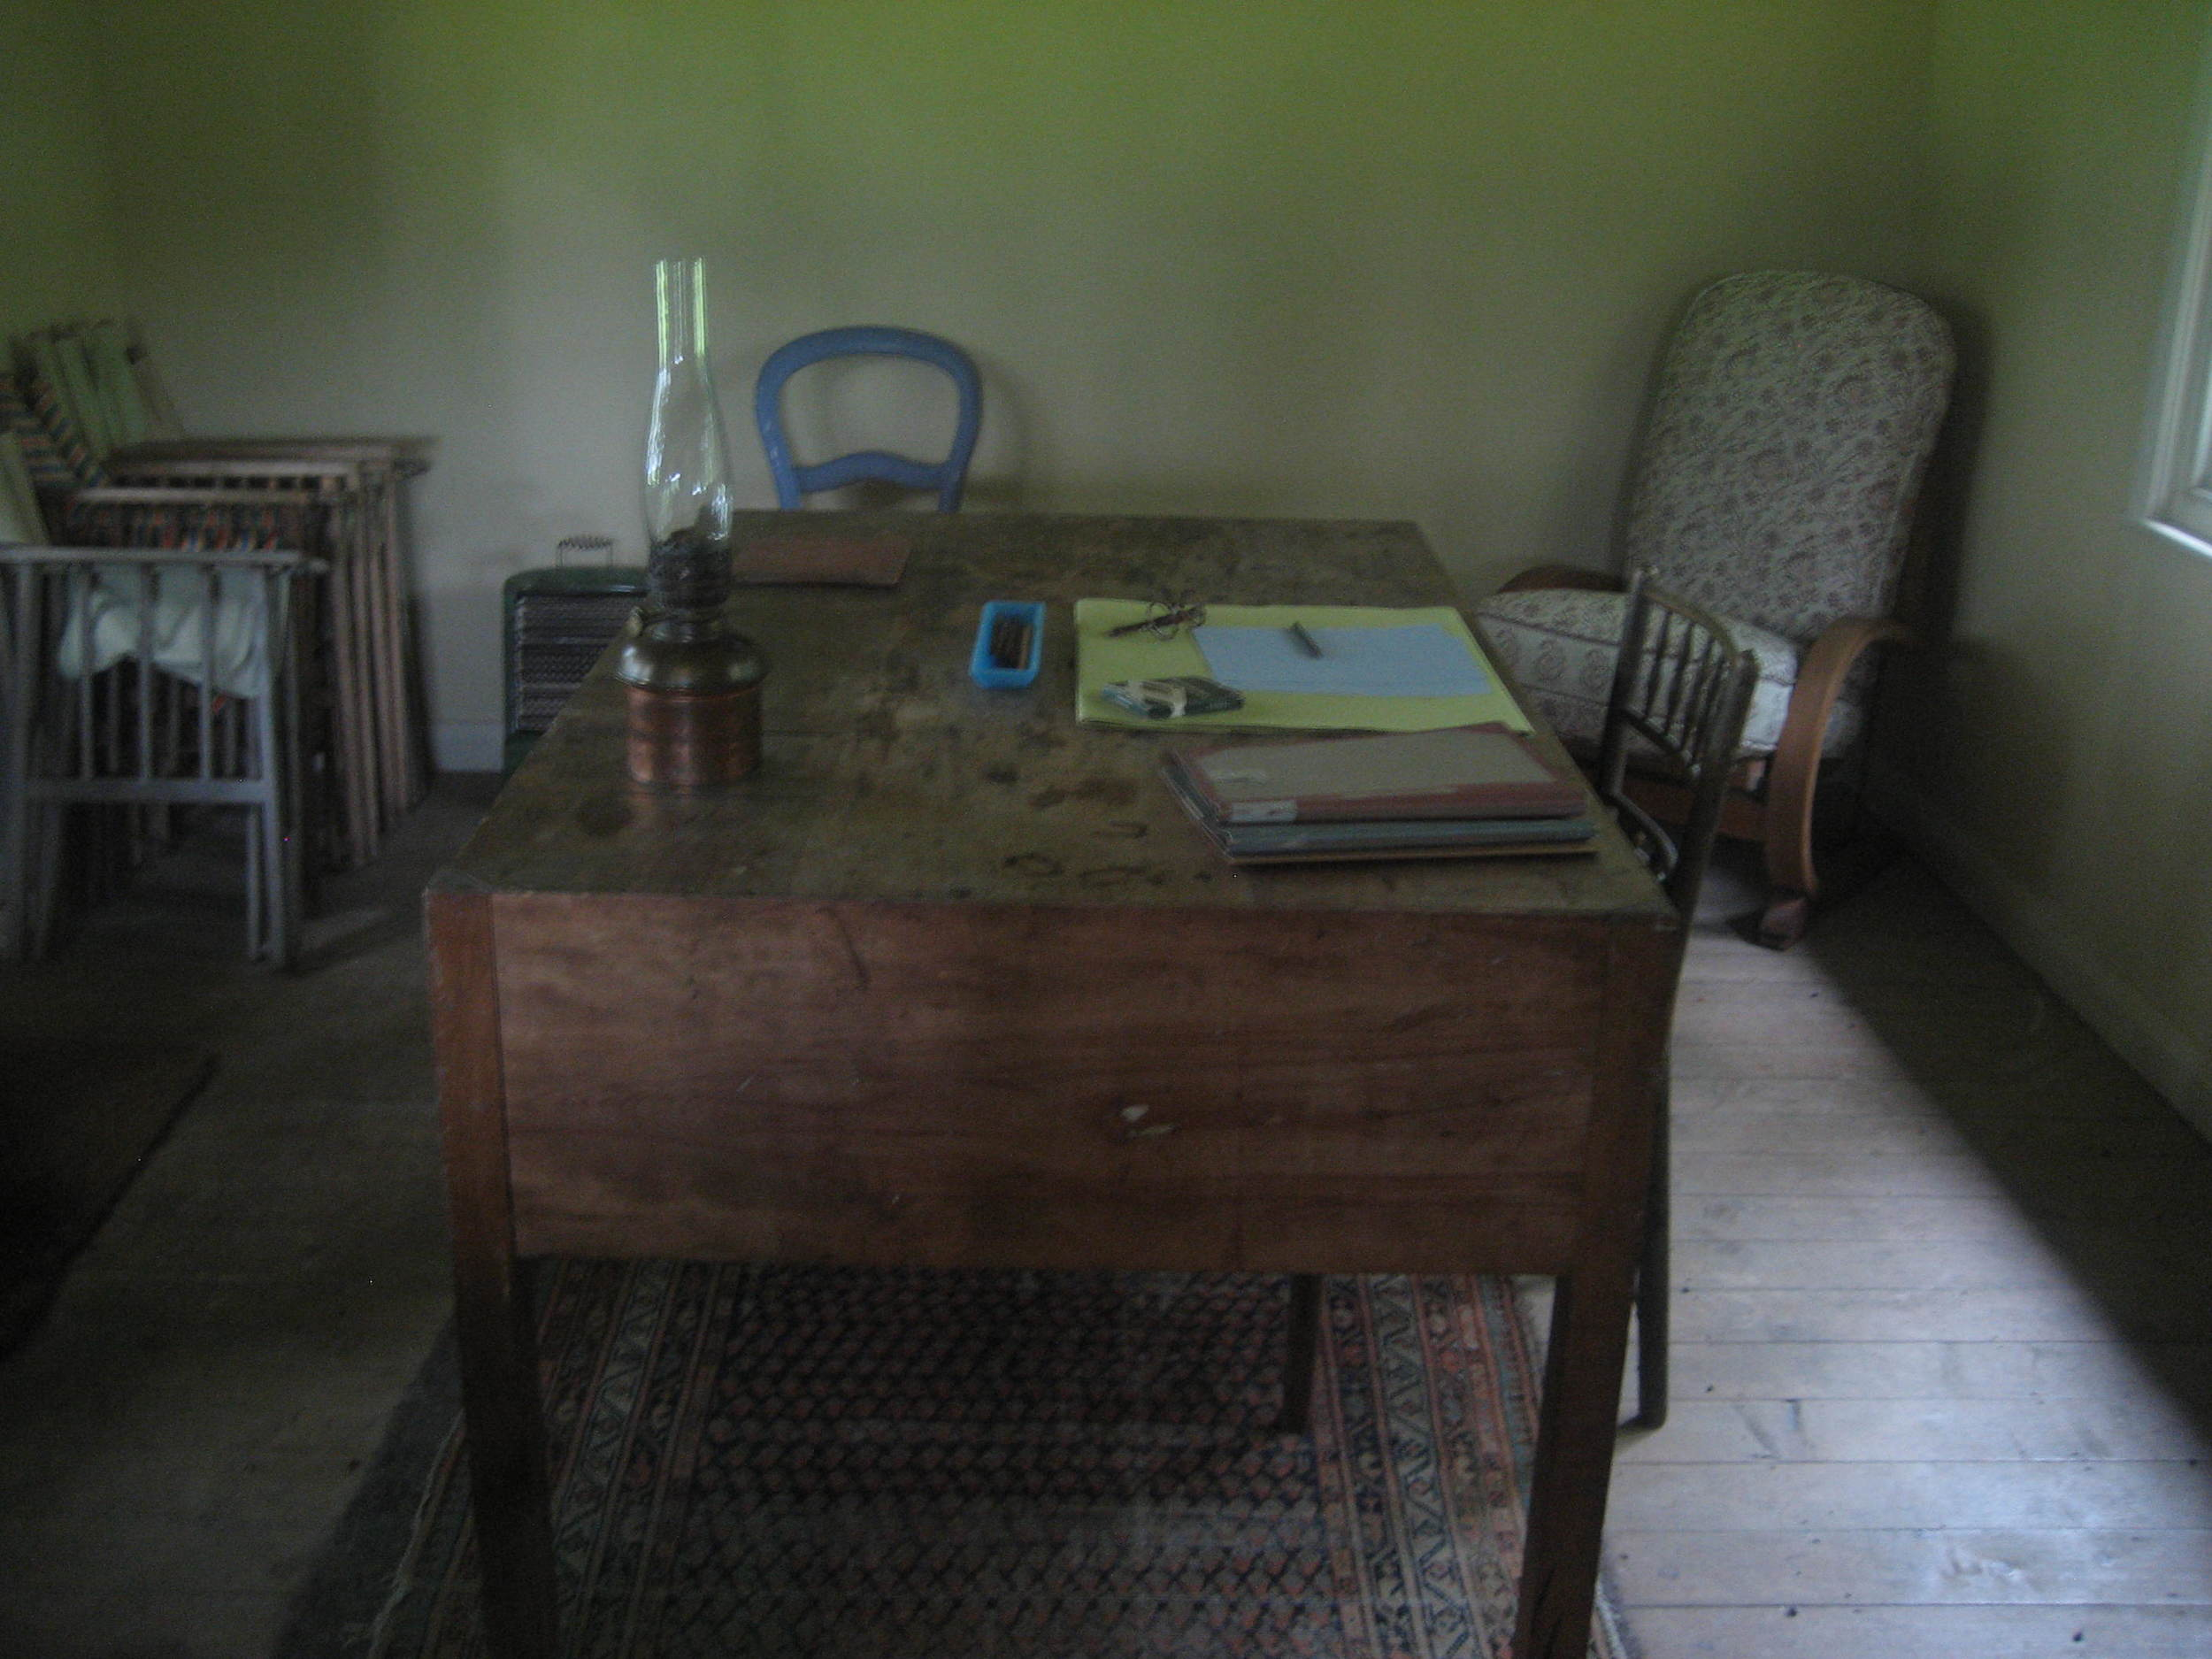 Woolf's writing shed in the backyard